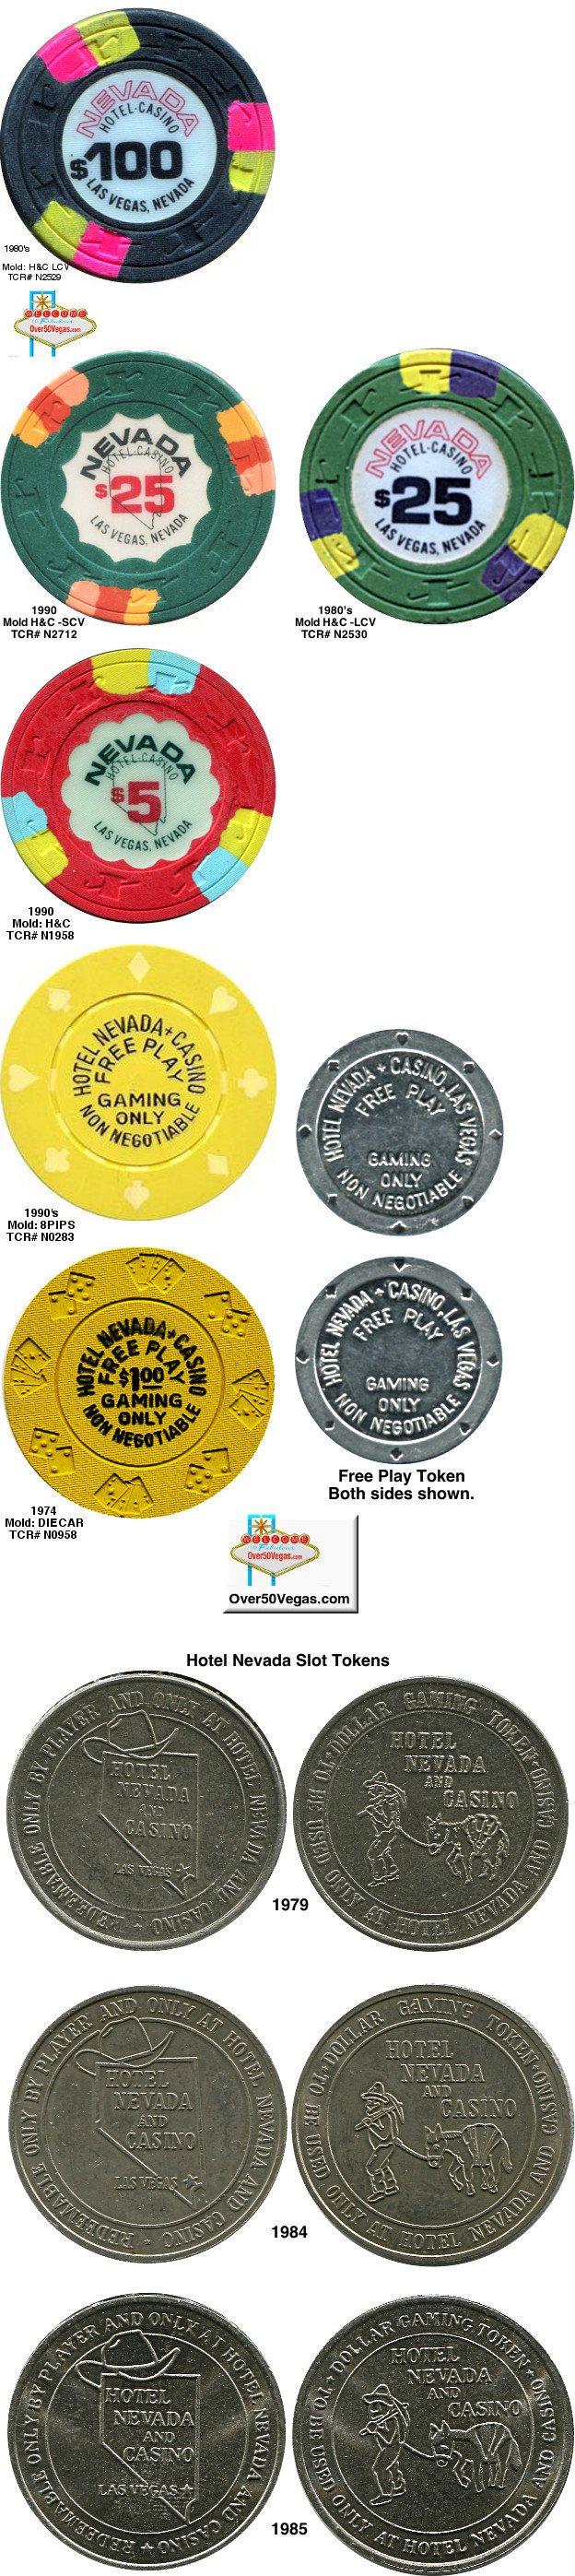 Gaming chips and slot tokens from Nevada Hotel in Las Vegas, NV